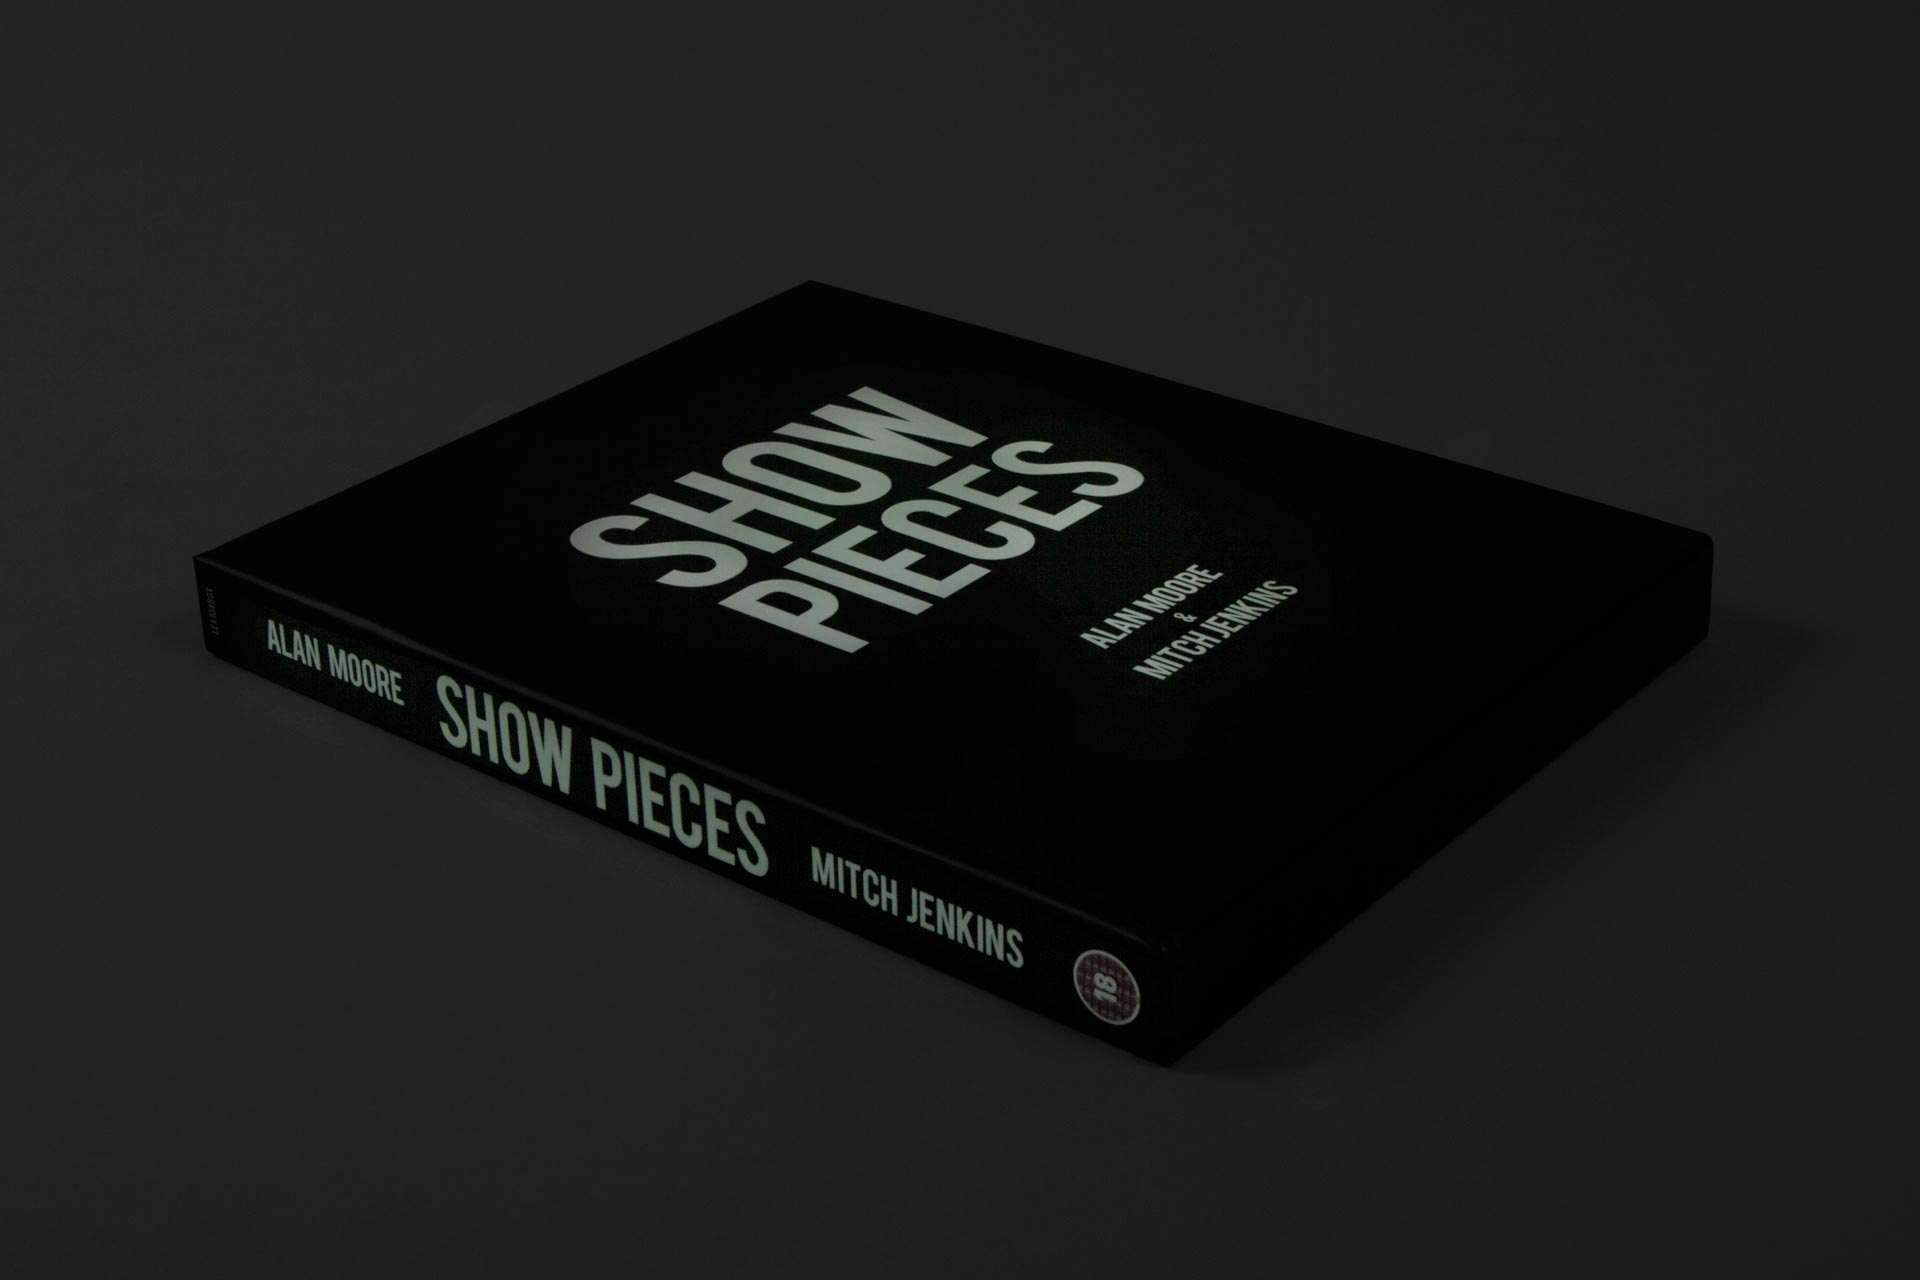 show-pieces-boxset-cover-glow